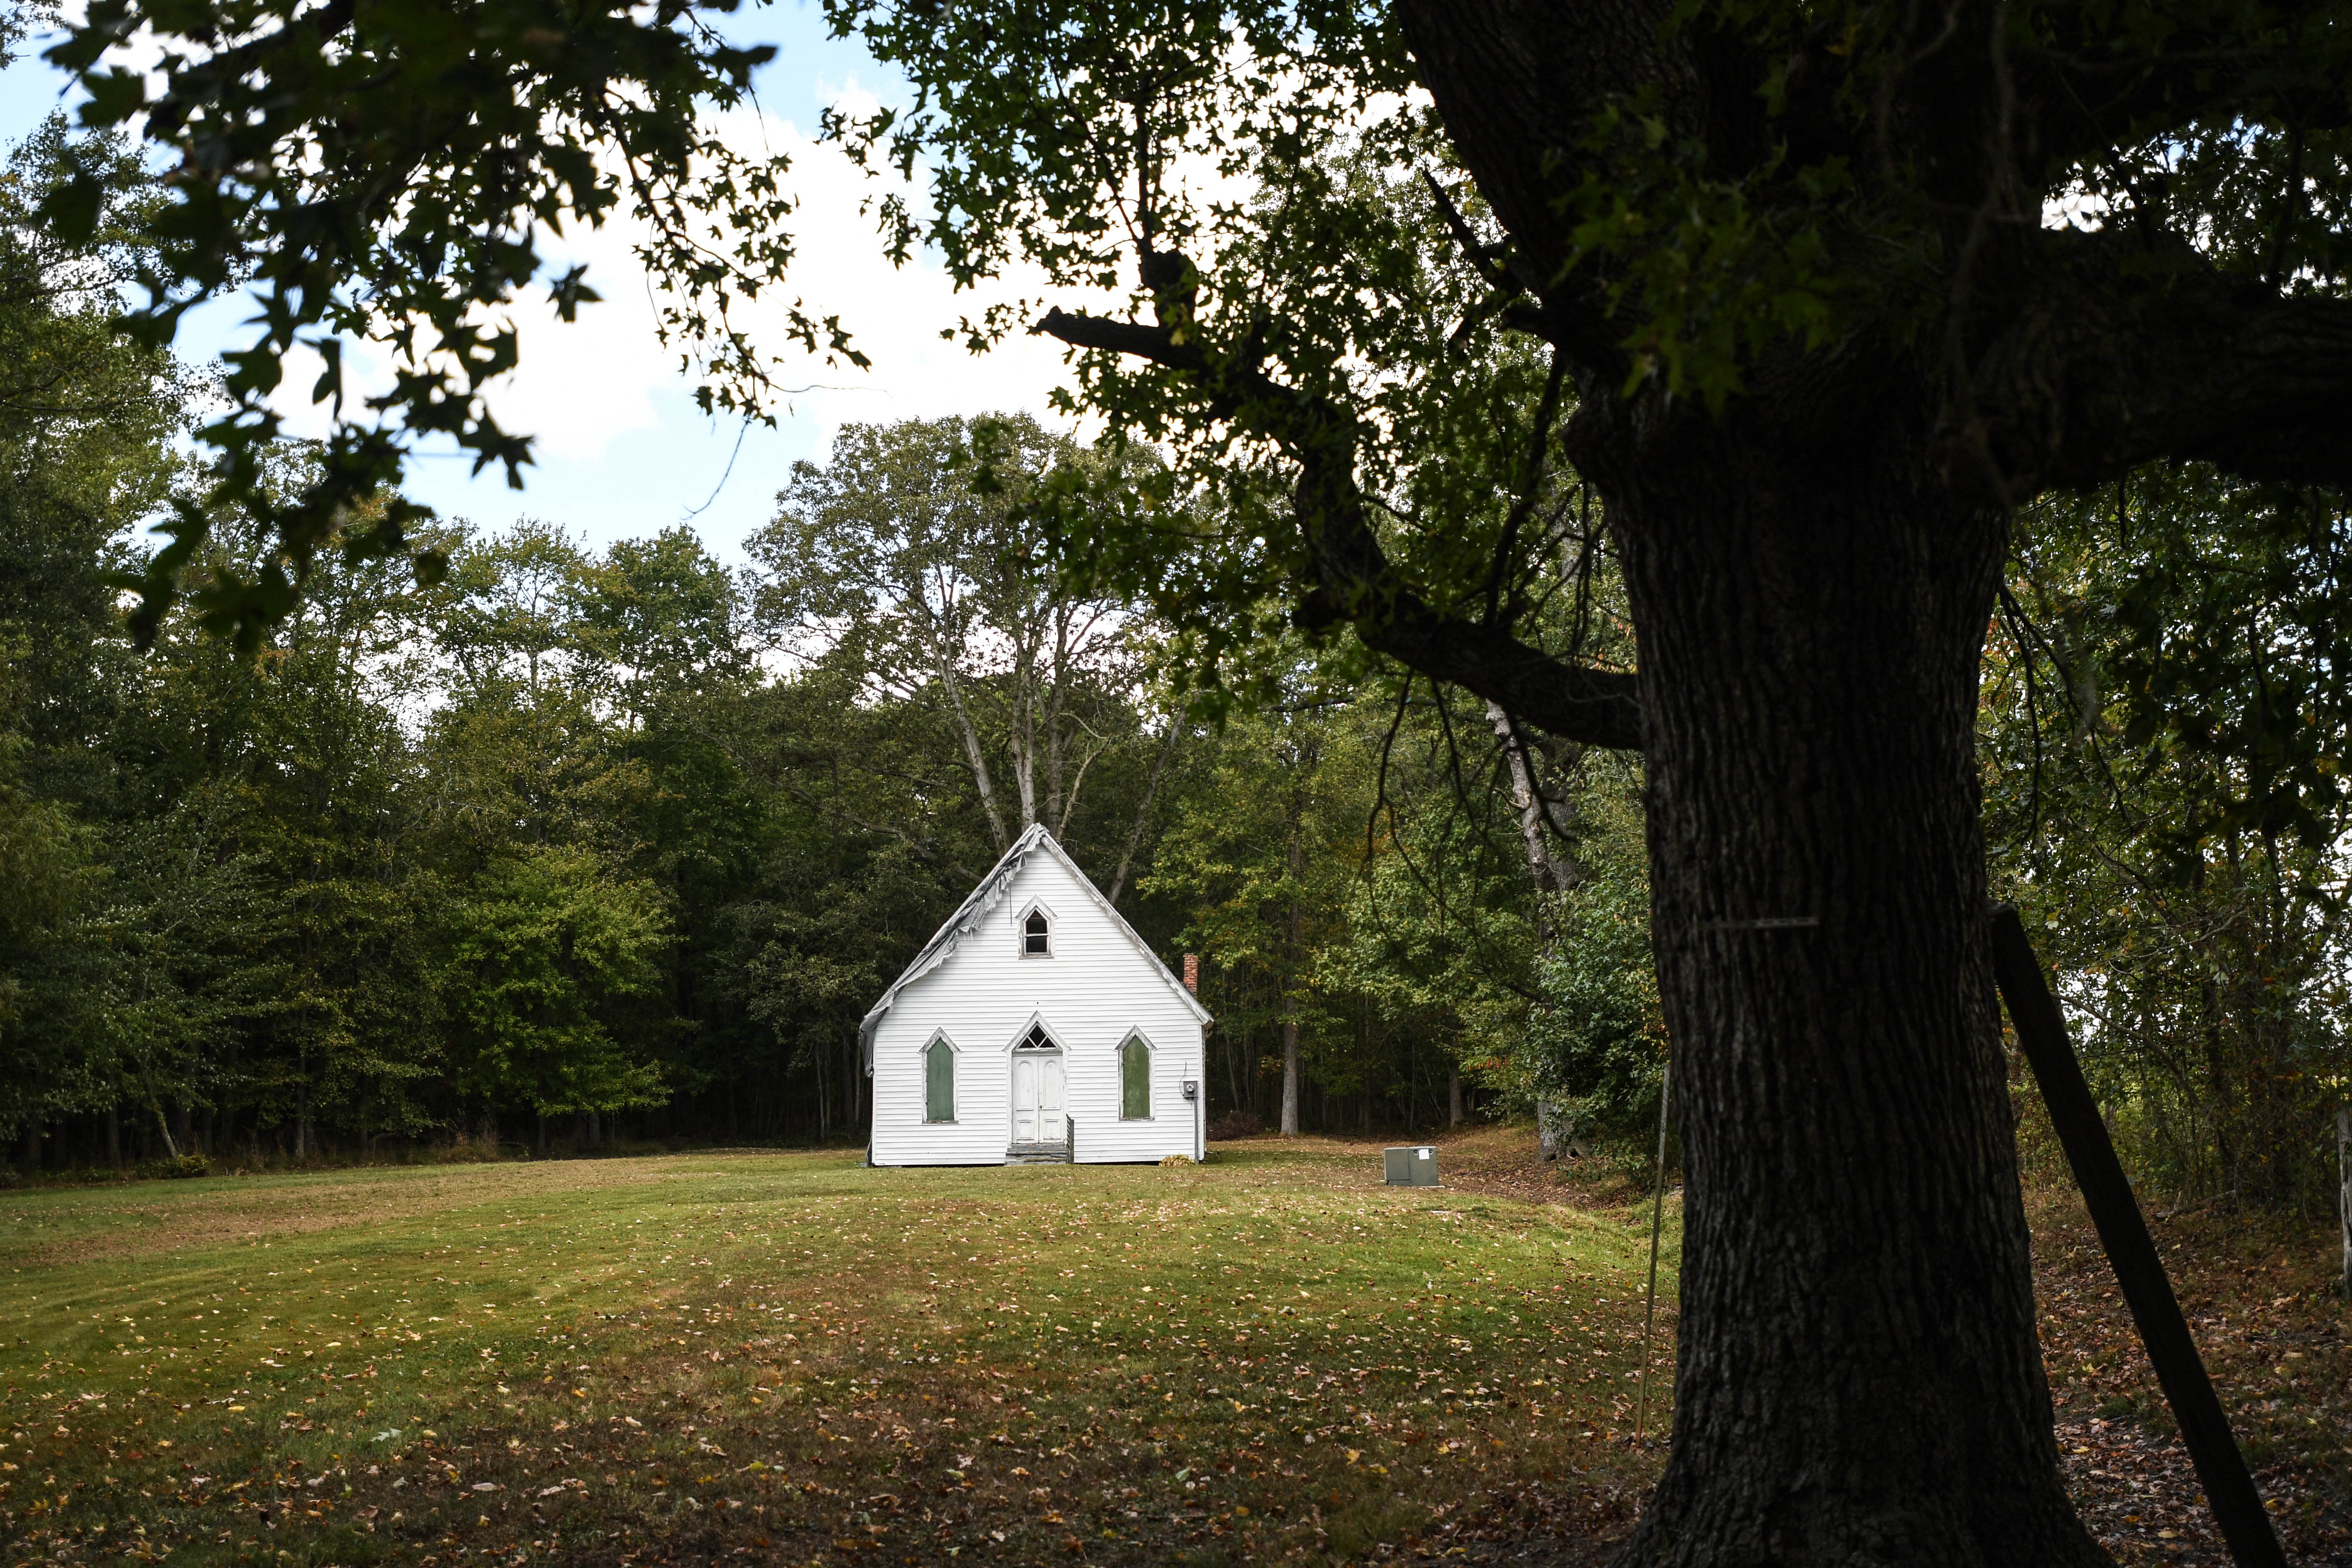 Harriet Tubman relied on her faith in God during her escape. Alex and Lisa Green, owners of Harriet Tubman Tours, believe this is where the Underground Railroad conductor once attended church near Cambridge, Maryland. The building is long abandoned.